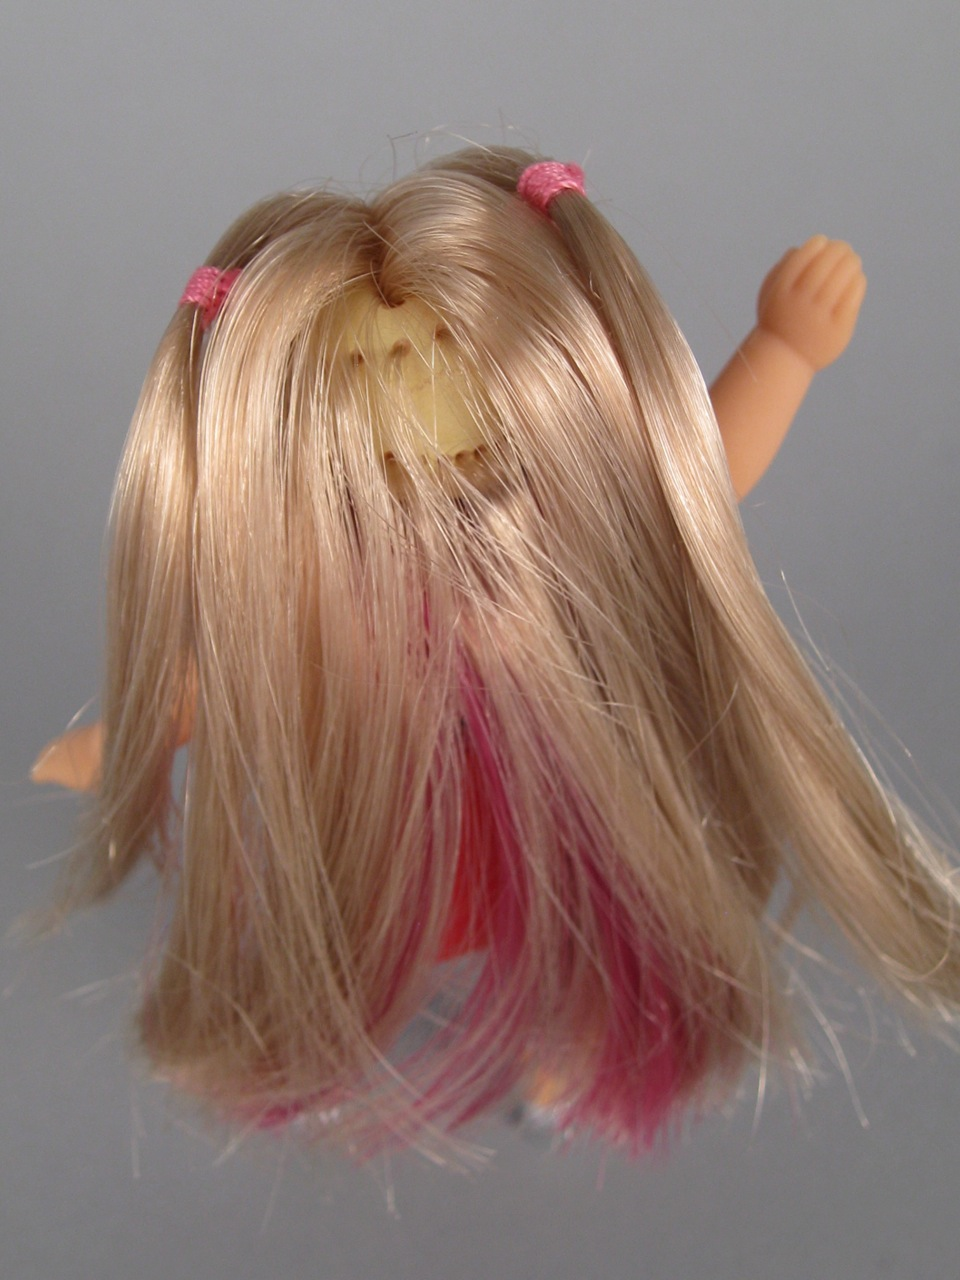 Pink bald patch on scalp